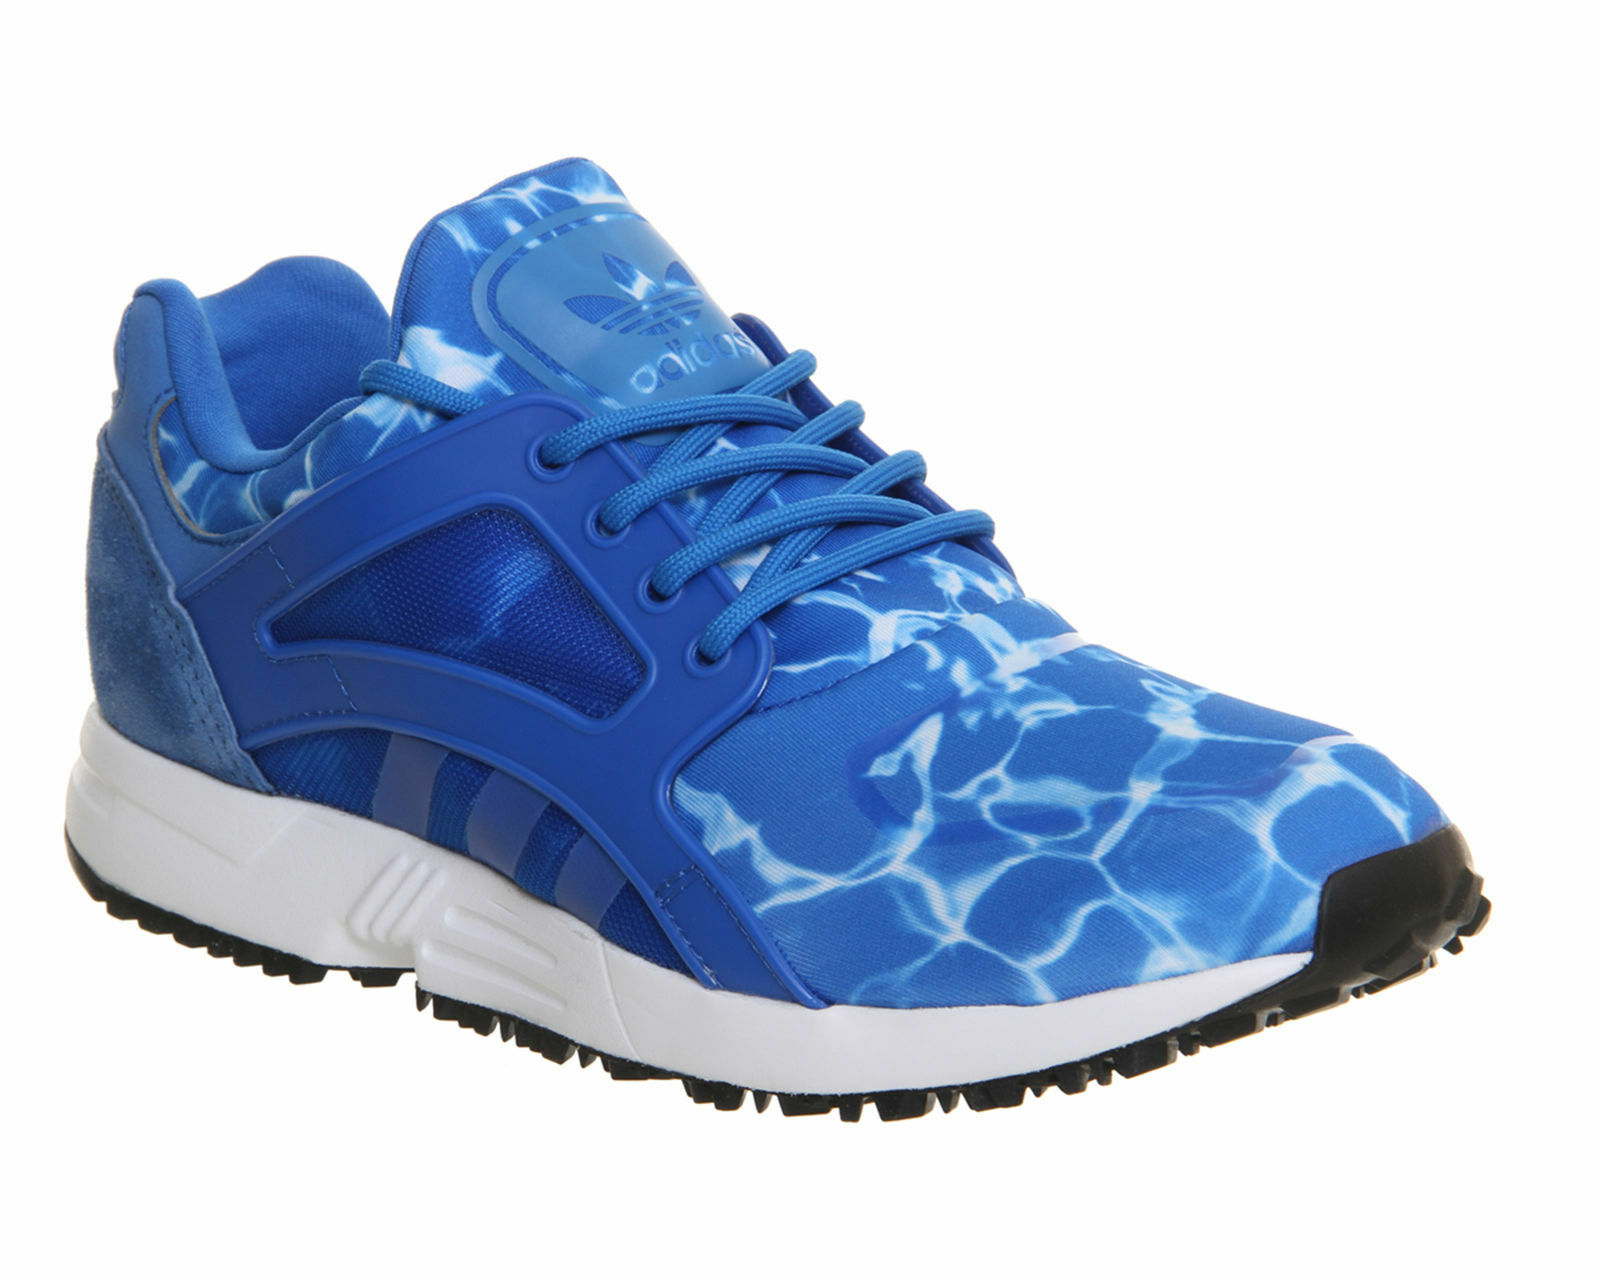 Adidas Originals Racer Lite Men's Trainers Shoes Bluebird Genuine M19693 The latest discount shoes for men and women